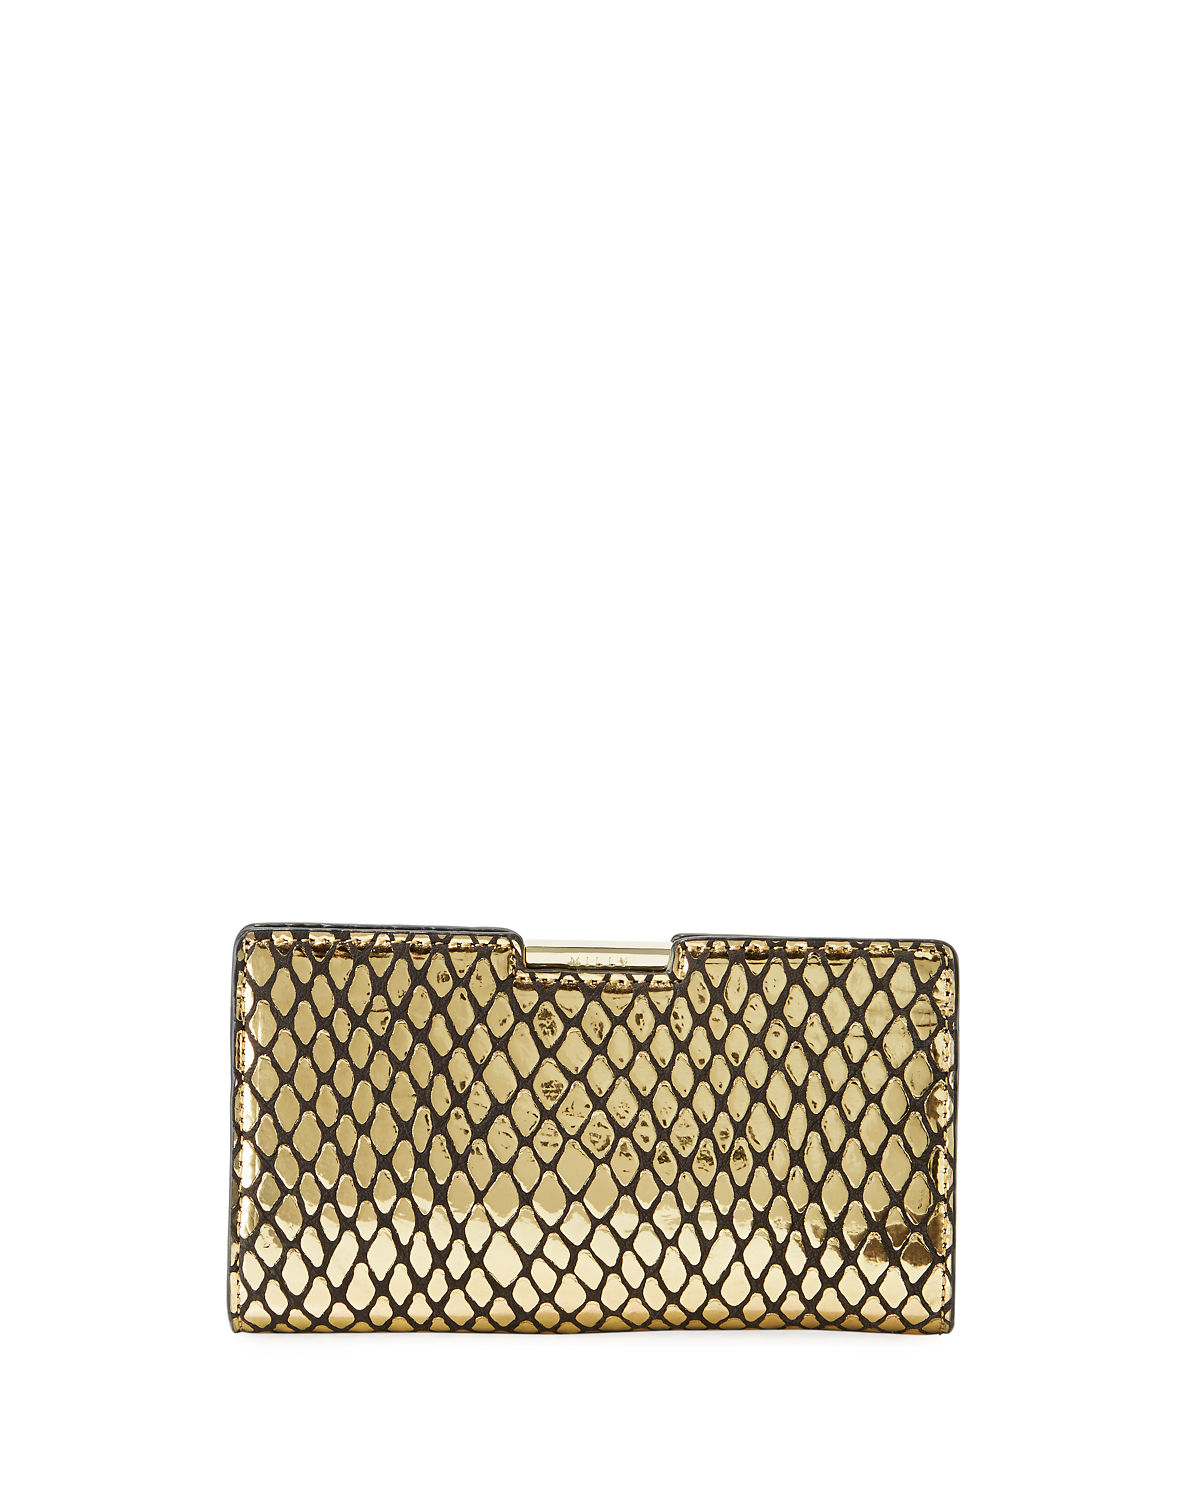 Metallic Reptile Embossed Framed Clutch Bag